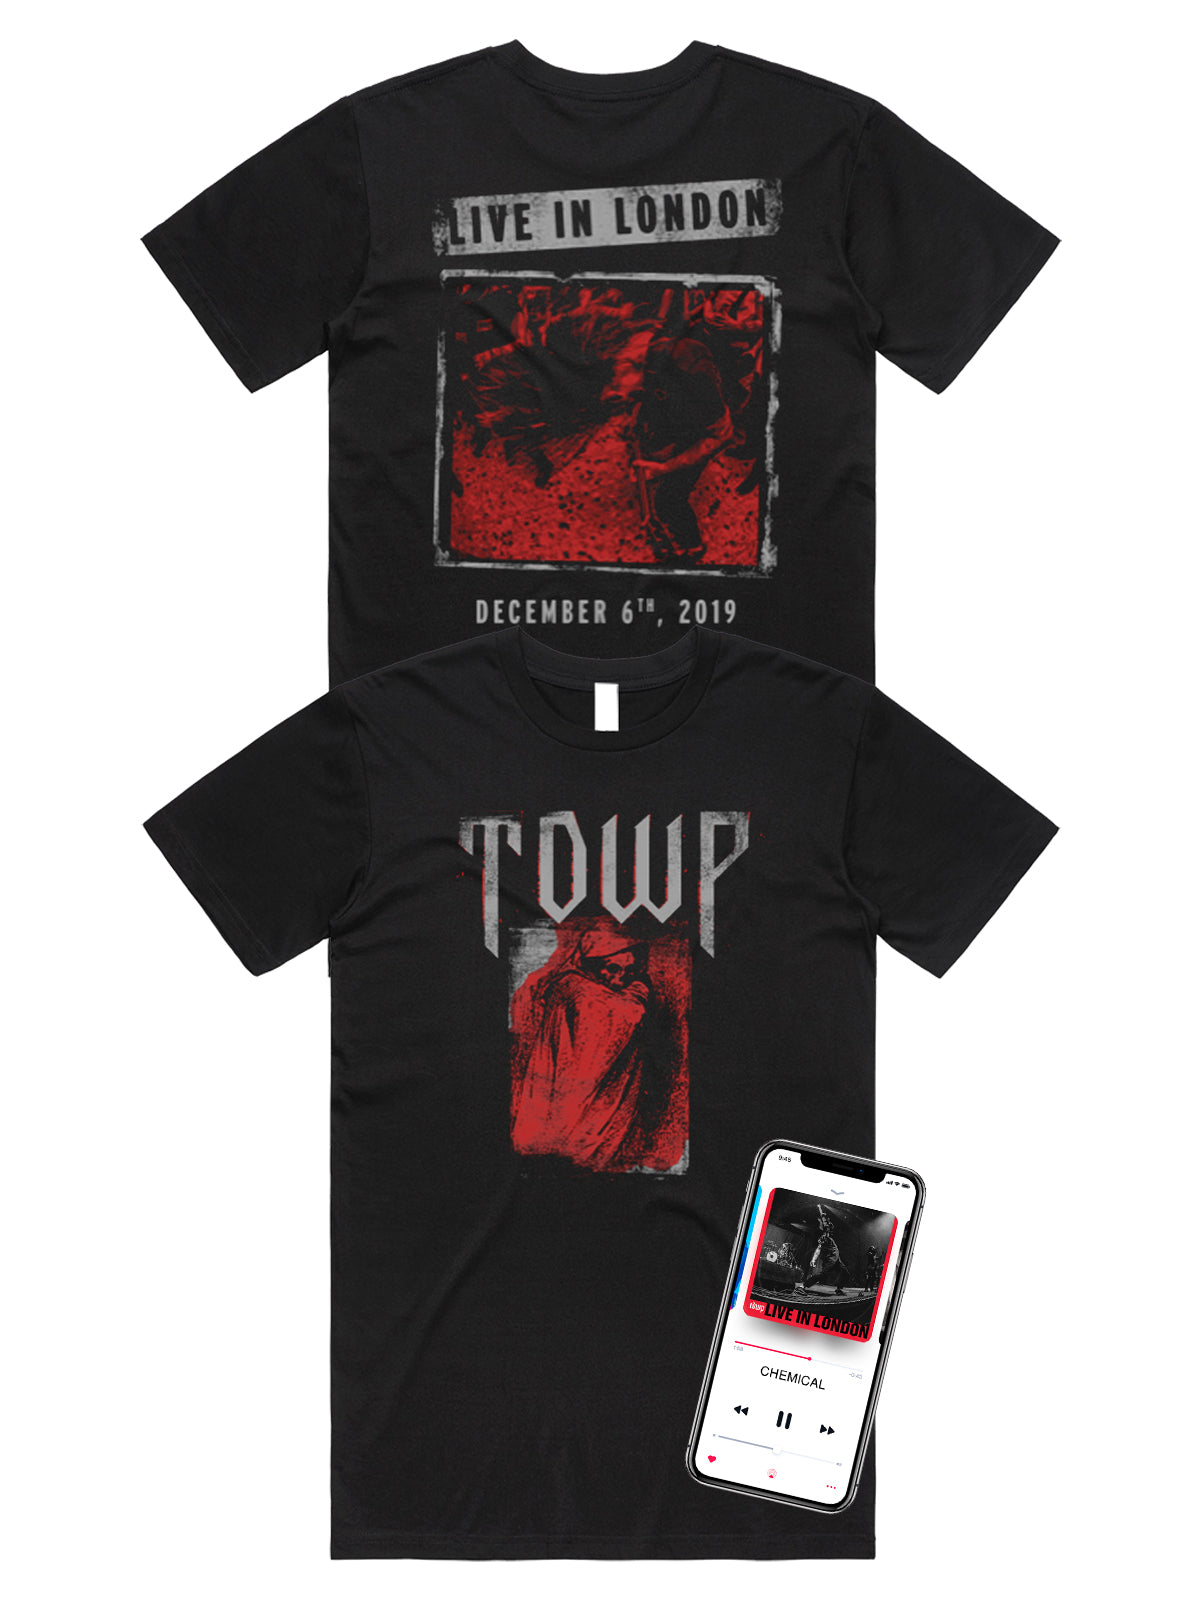 The Devil Wears Prada - Live In London Shirt + Download - SHIPS MAY 10 - Merch Limited